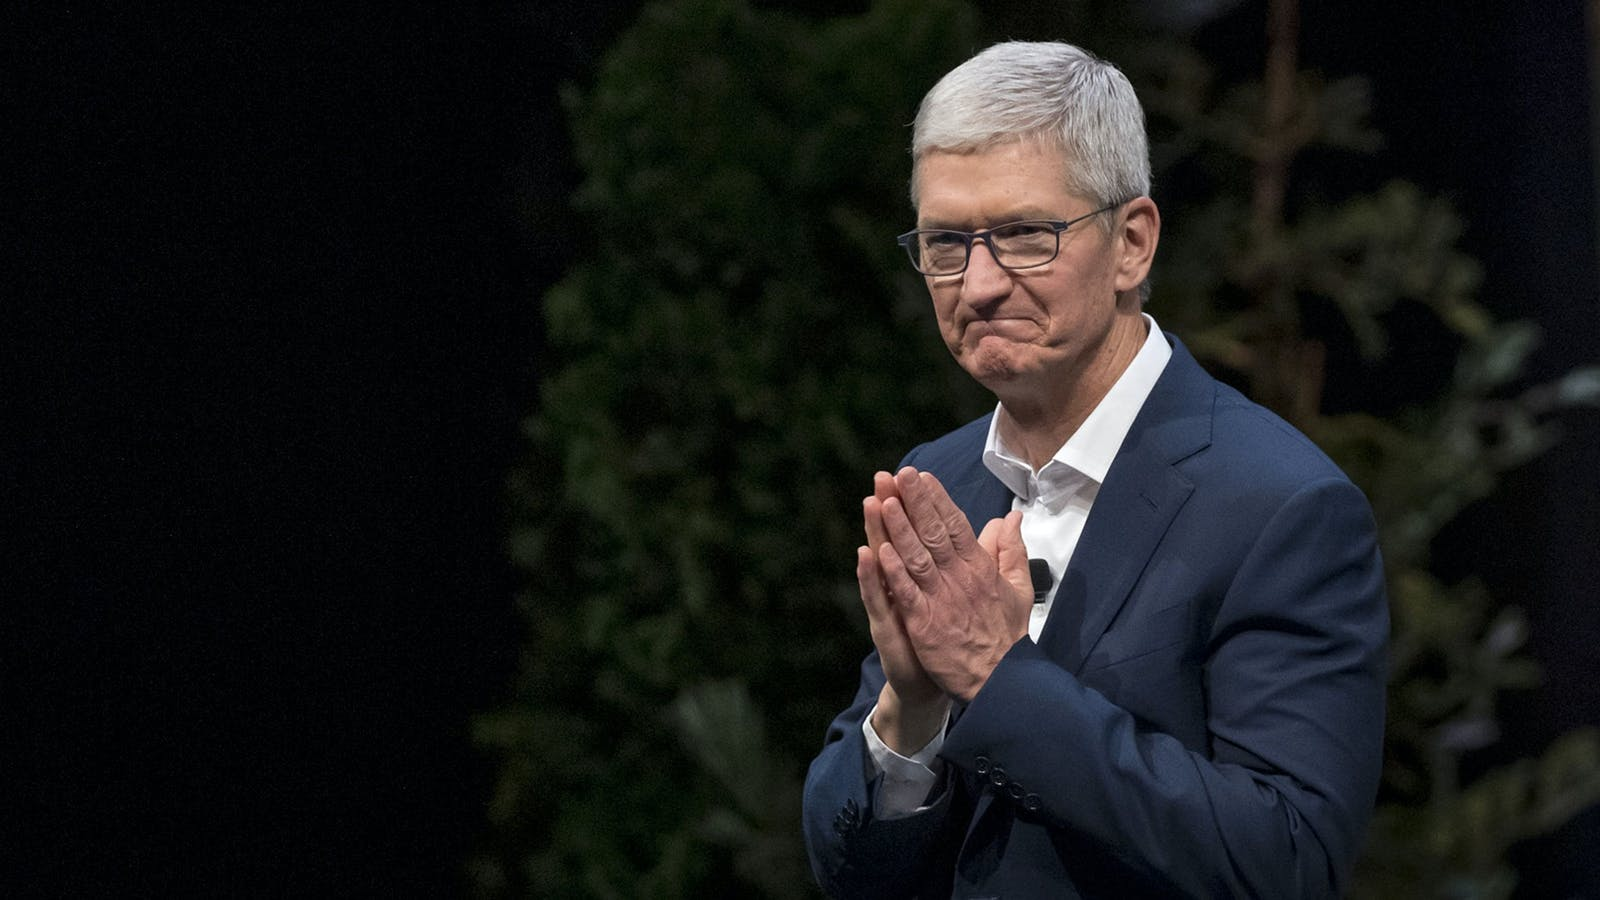 Apple CEO Tim Cook in 2019. Photo by Bloomberg